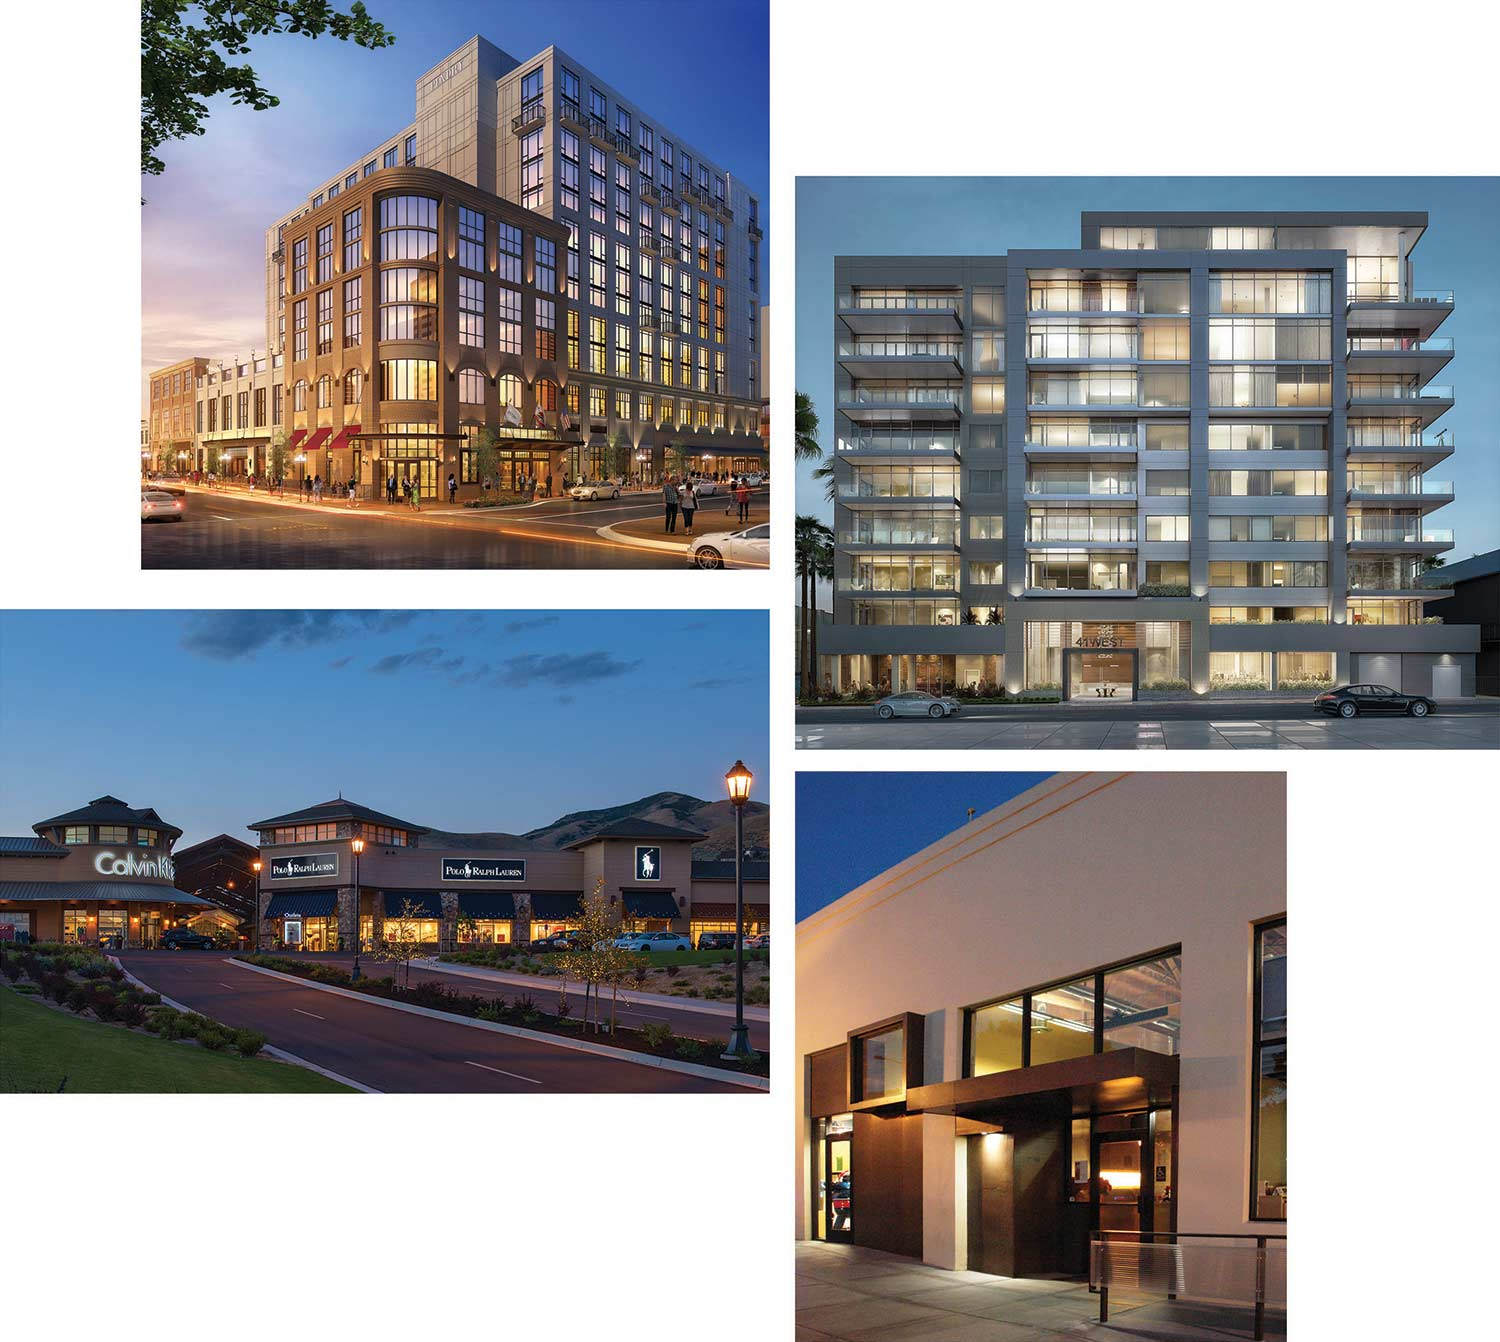 4 buildings designed by ACRM Architects